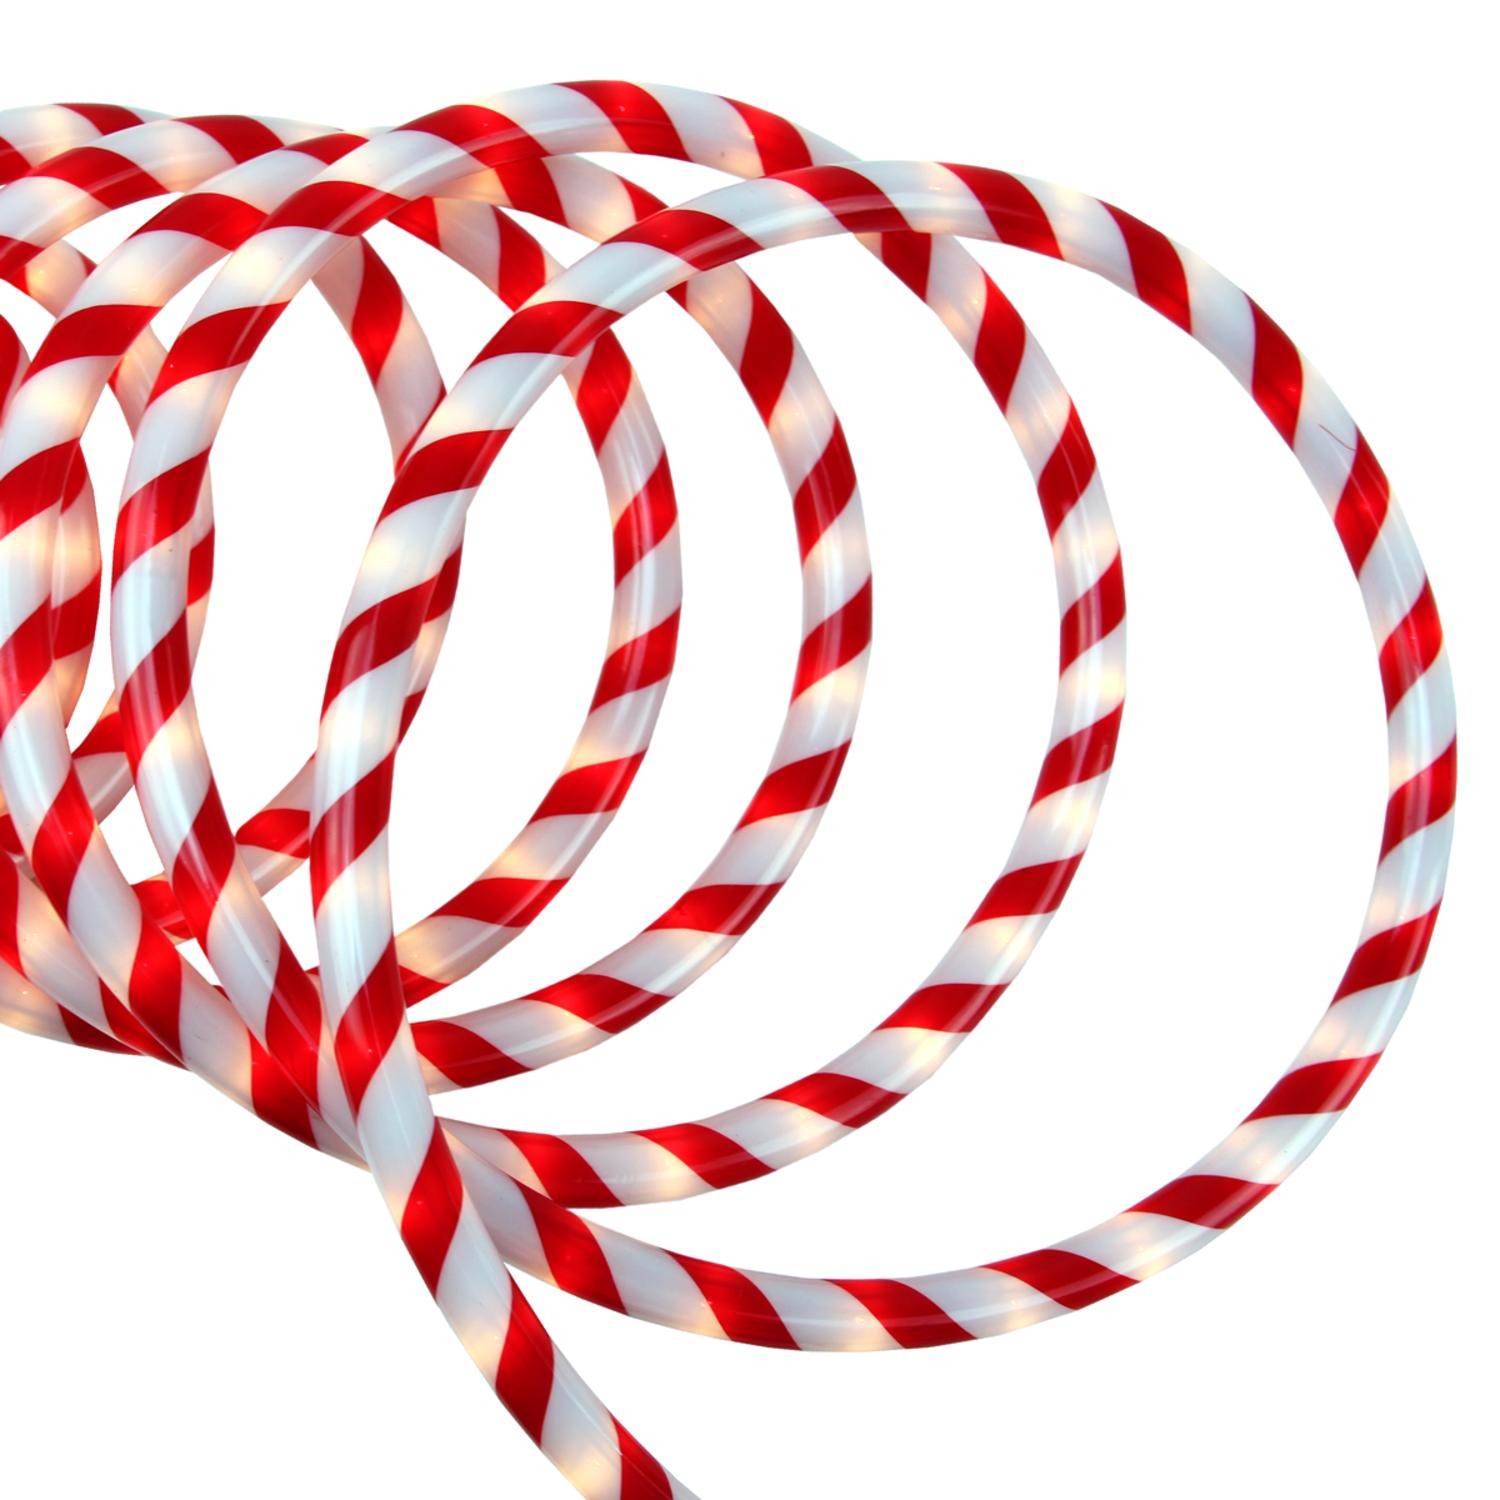 18 red and white candy cane indooroutdoor christmas rope lights 18 red and white candy cane indooroutdoor christmas rope lights 1bulb spacing walmart mozeypictures Images